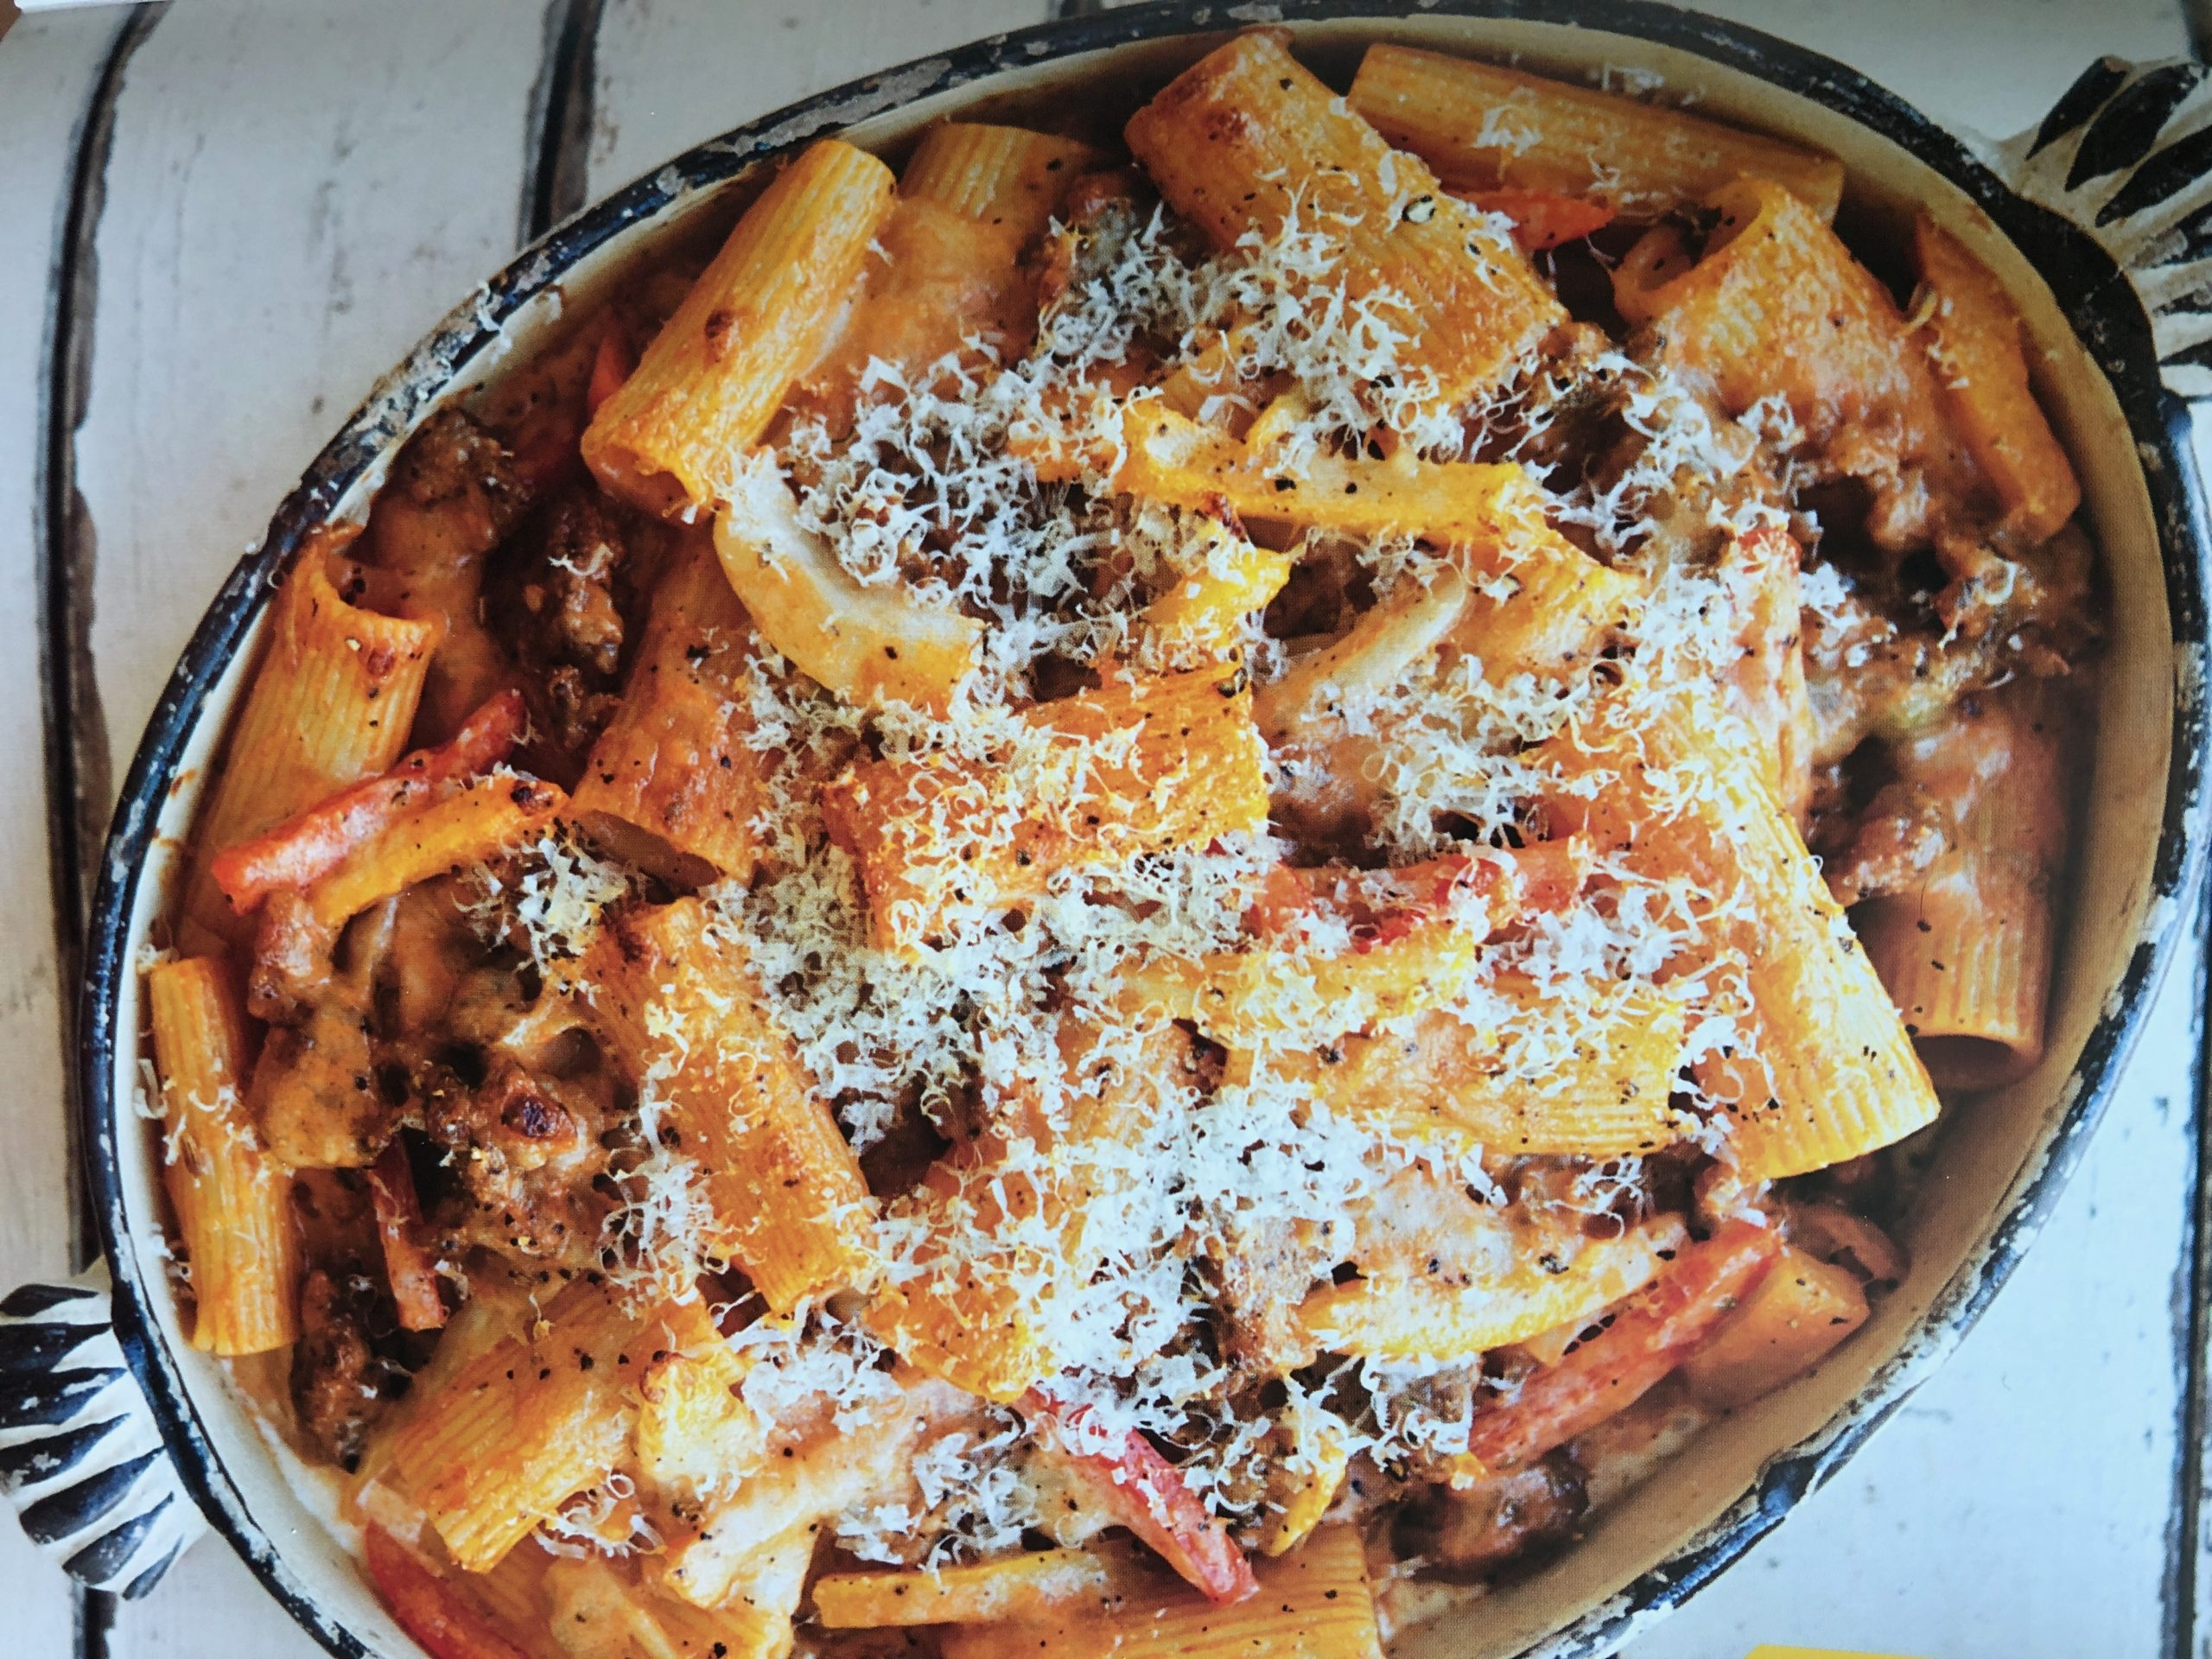 Recipe: Baked Rigatoni with Fennel, Sausage & Peppers